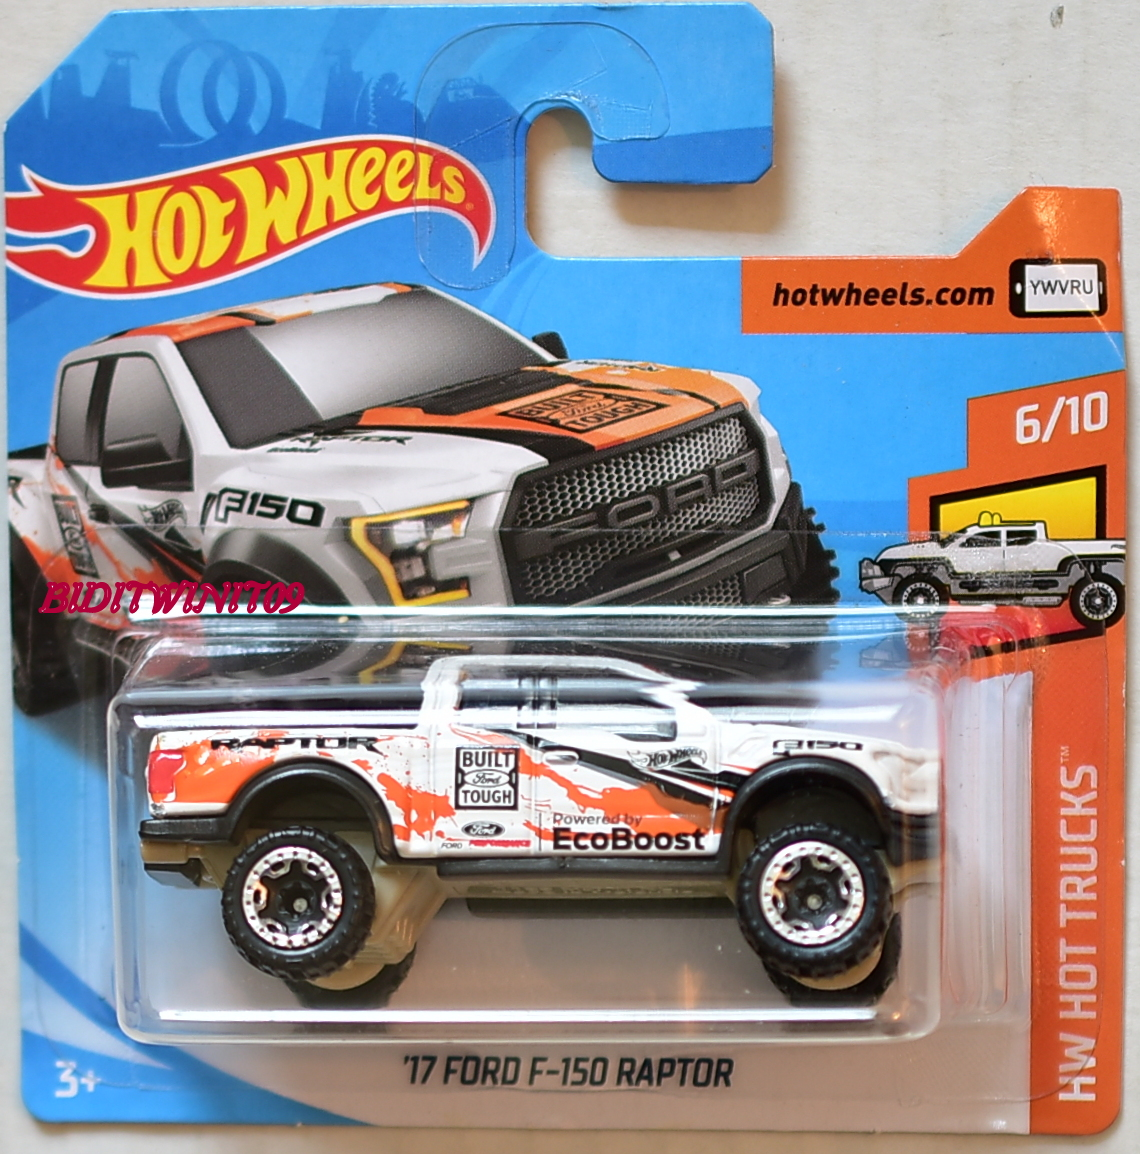 Hot wheels 2018 hw hot trucks 17 ford f 150 raptor 610 short card hot wheels 2018 hw hot trucks 17 ford f 150 raptor 6 voltagebd Images